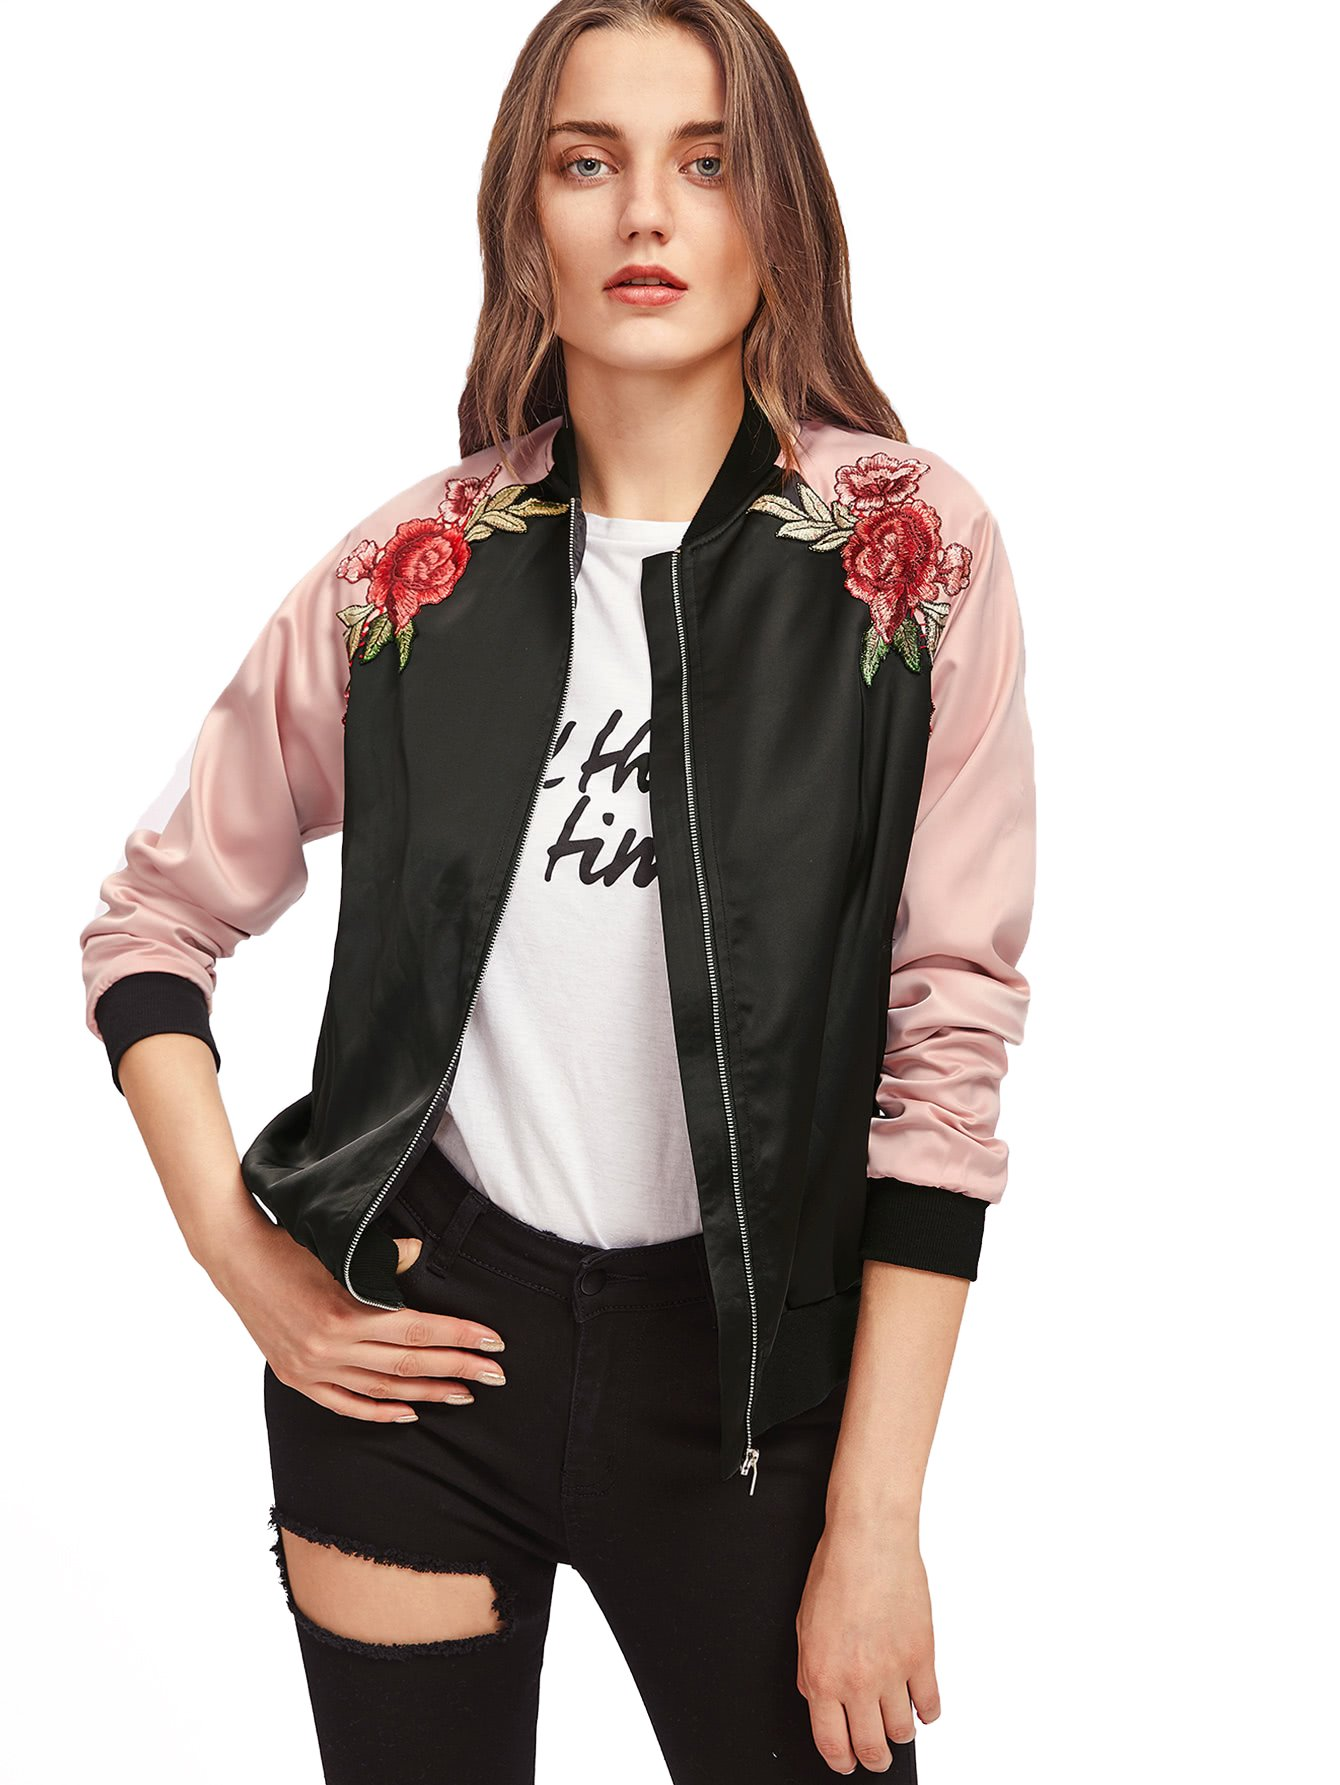 Floerns Women's Casual Short Embroidered Floral Bomber Jacket Black Pink M by Floerns